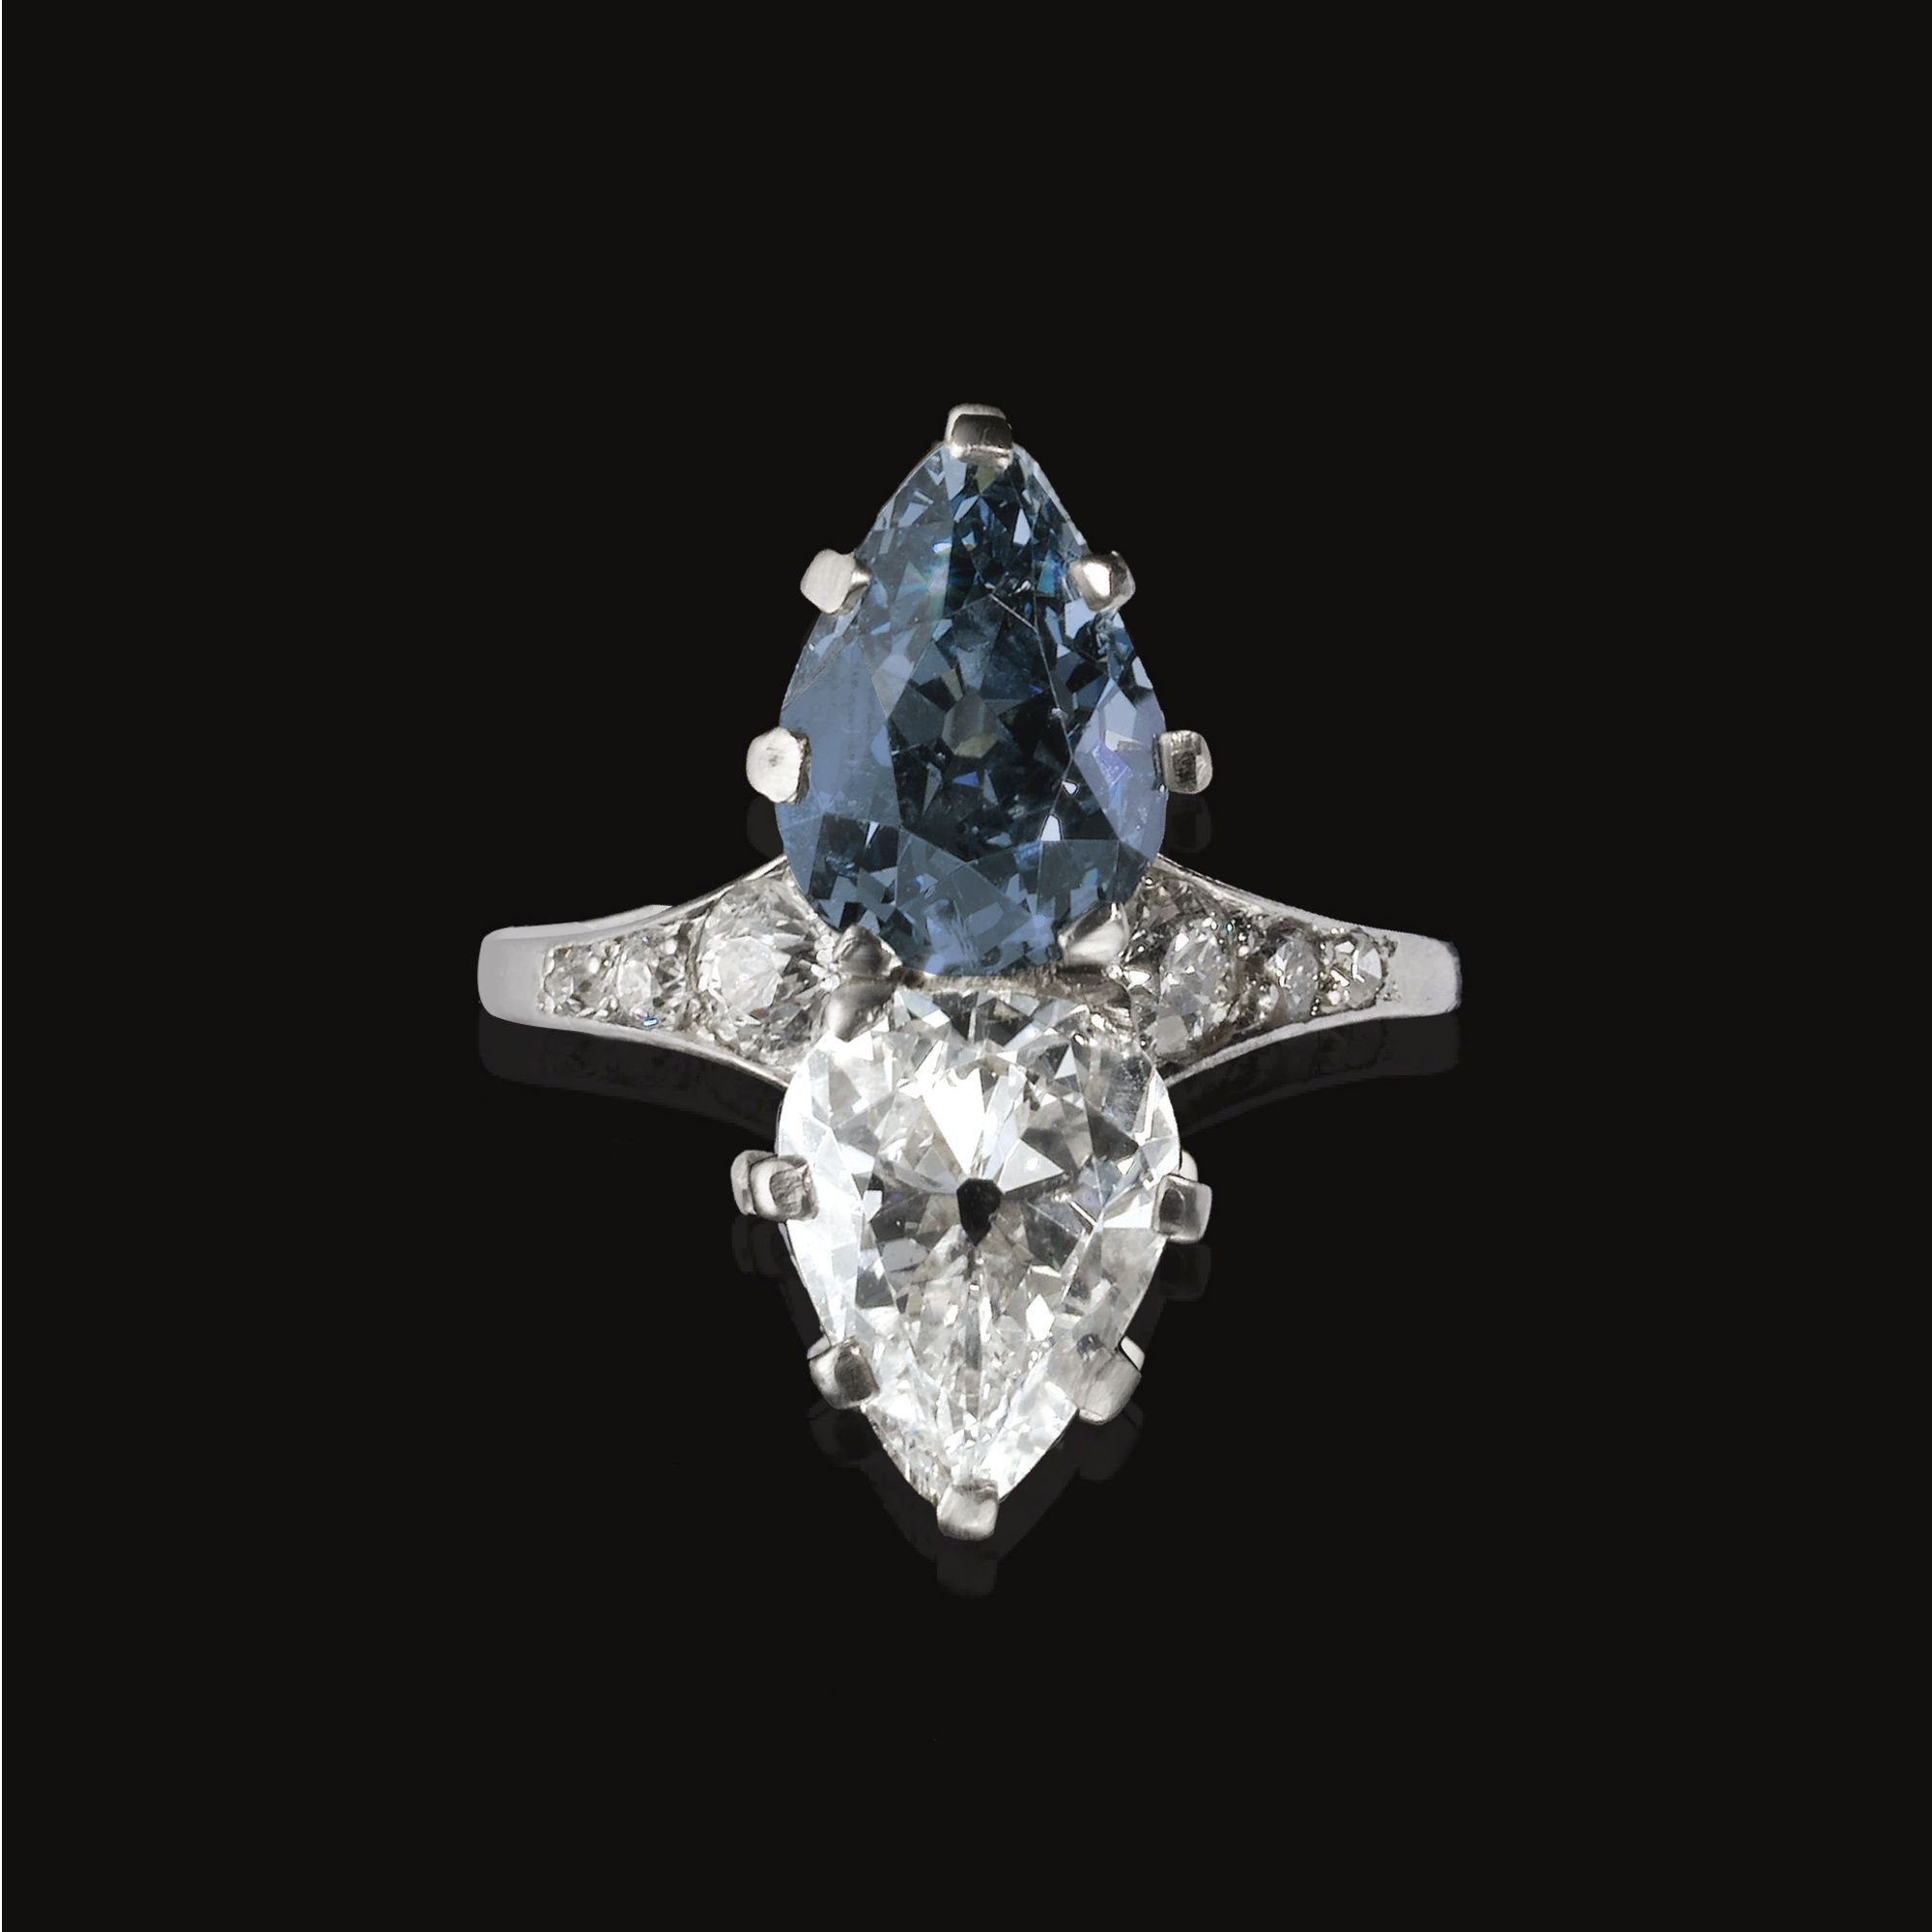 Fancy Deep Greyish blue diamond and Diamond ring circa 1900